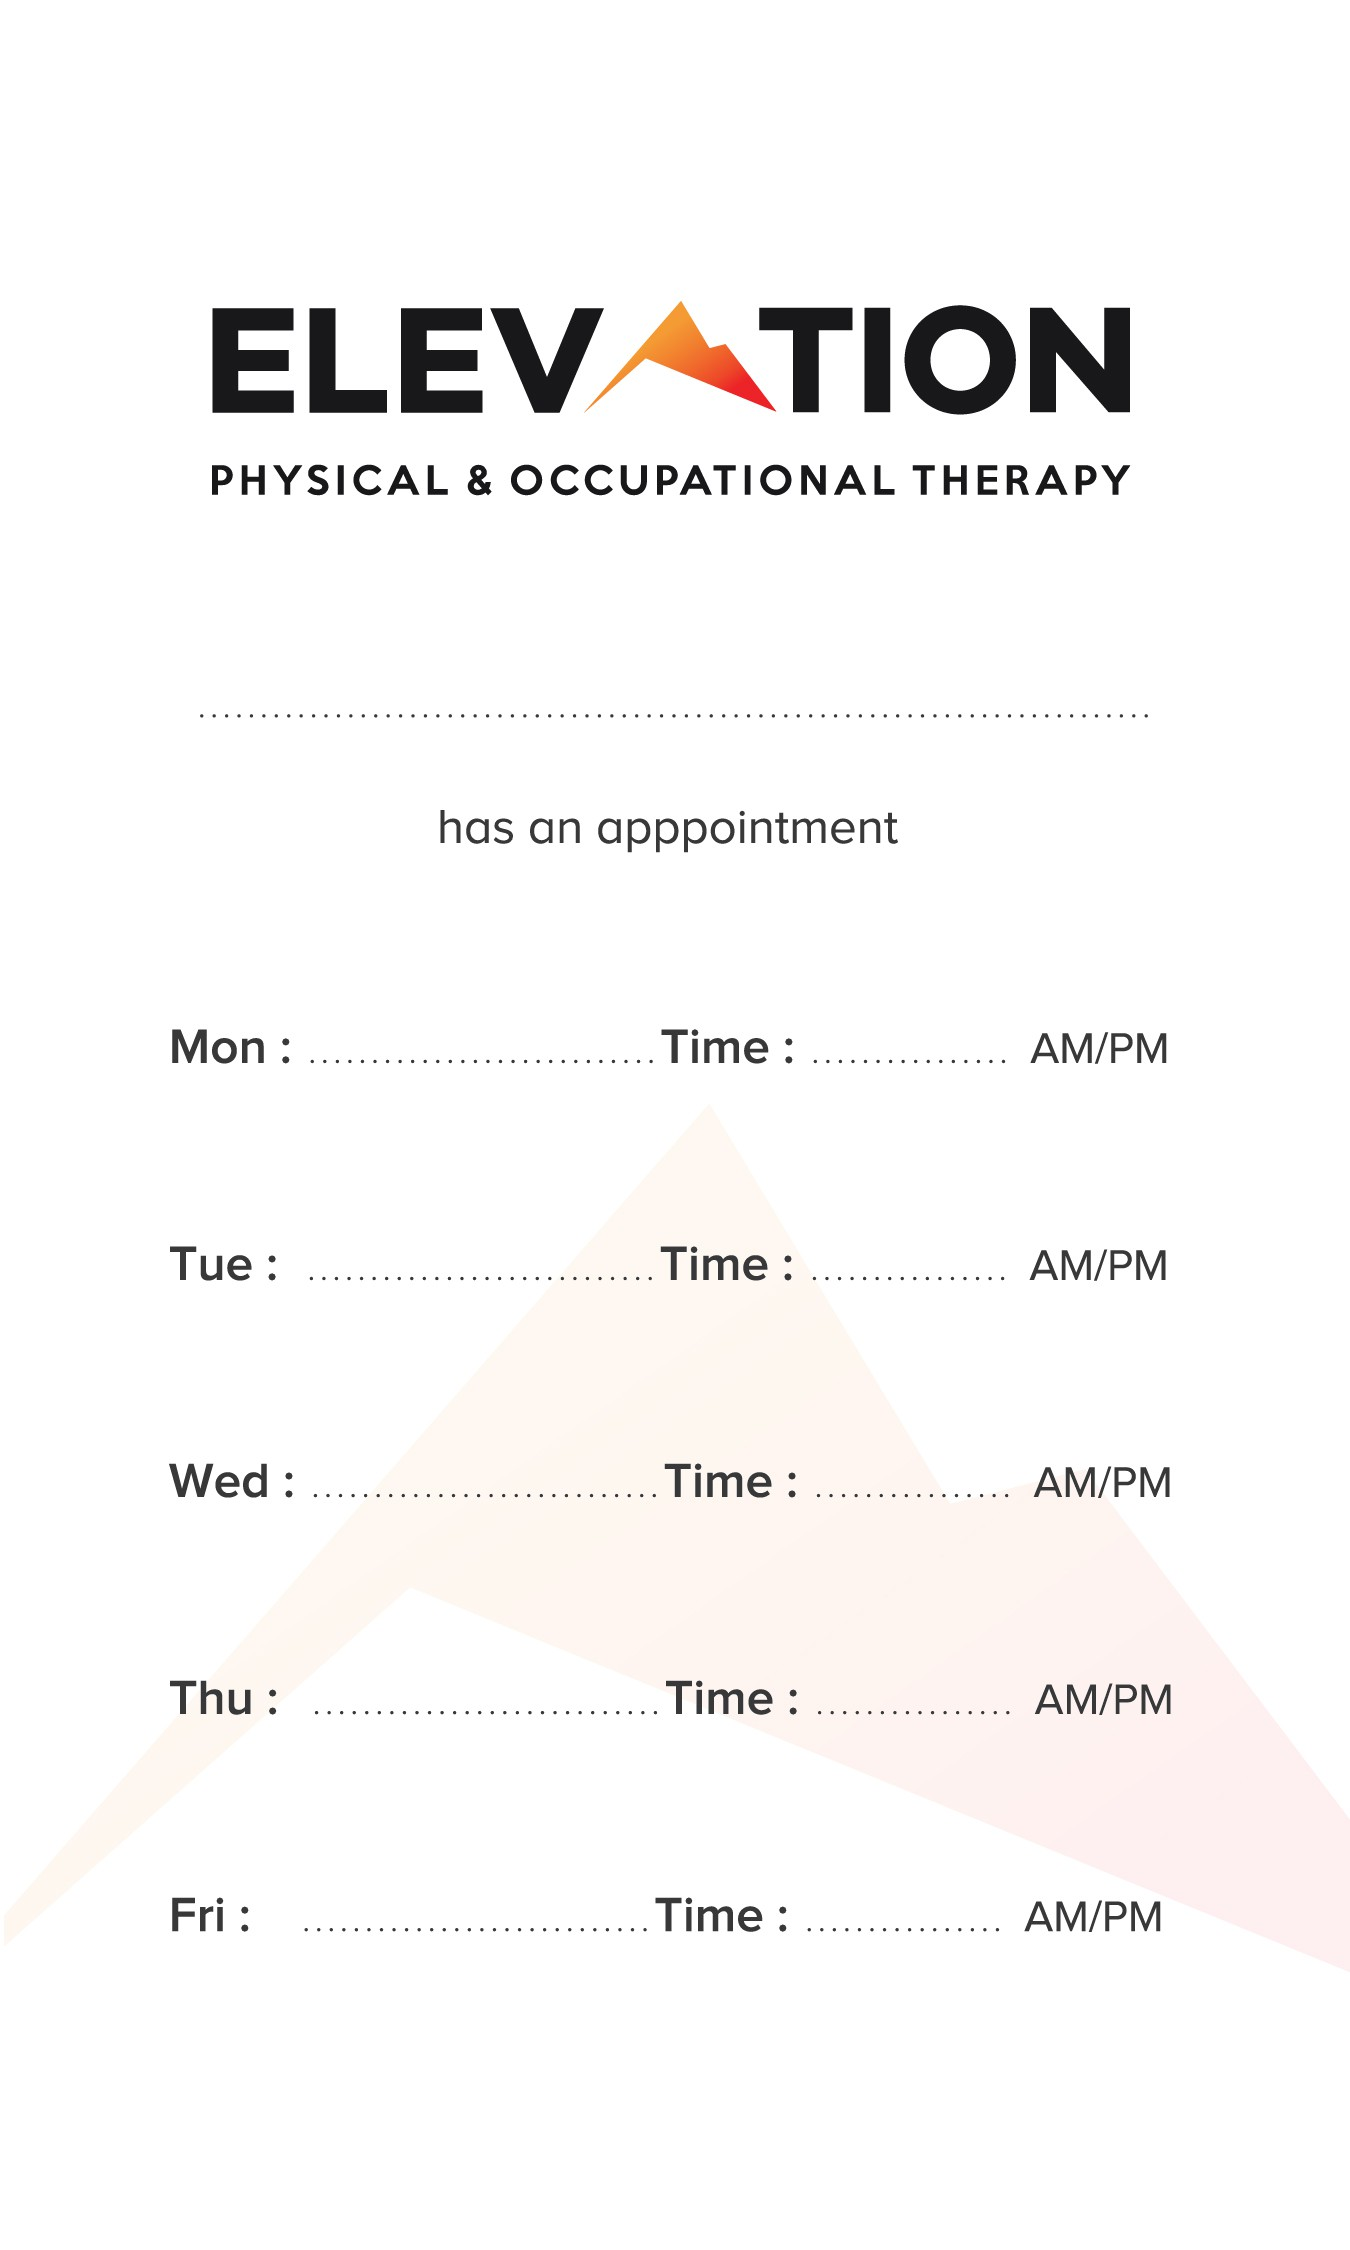 Elevation physical and occupational therapy business cards